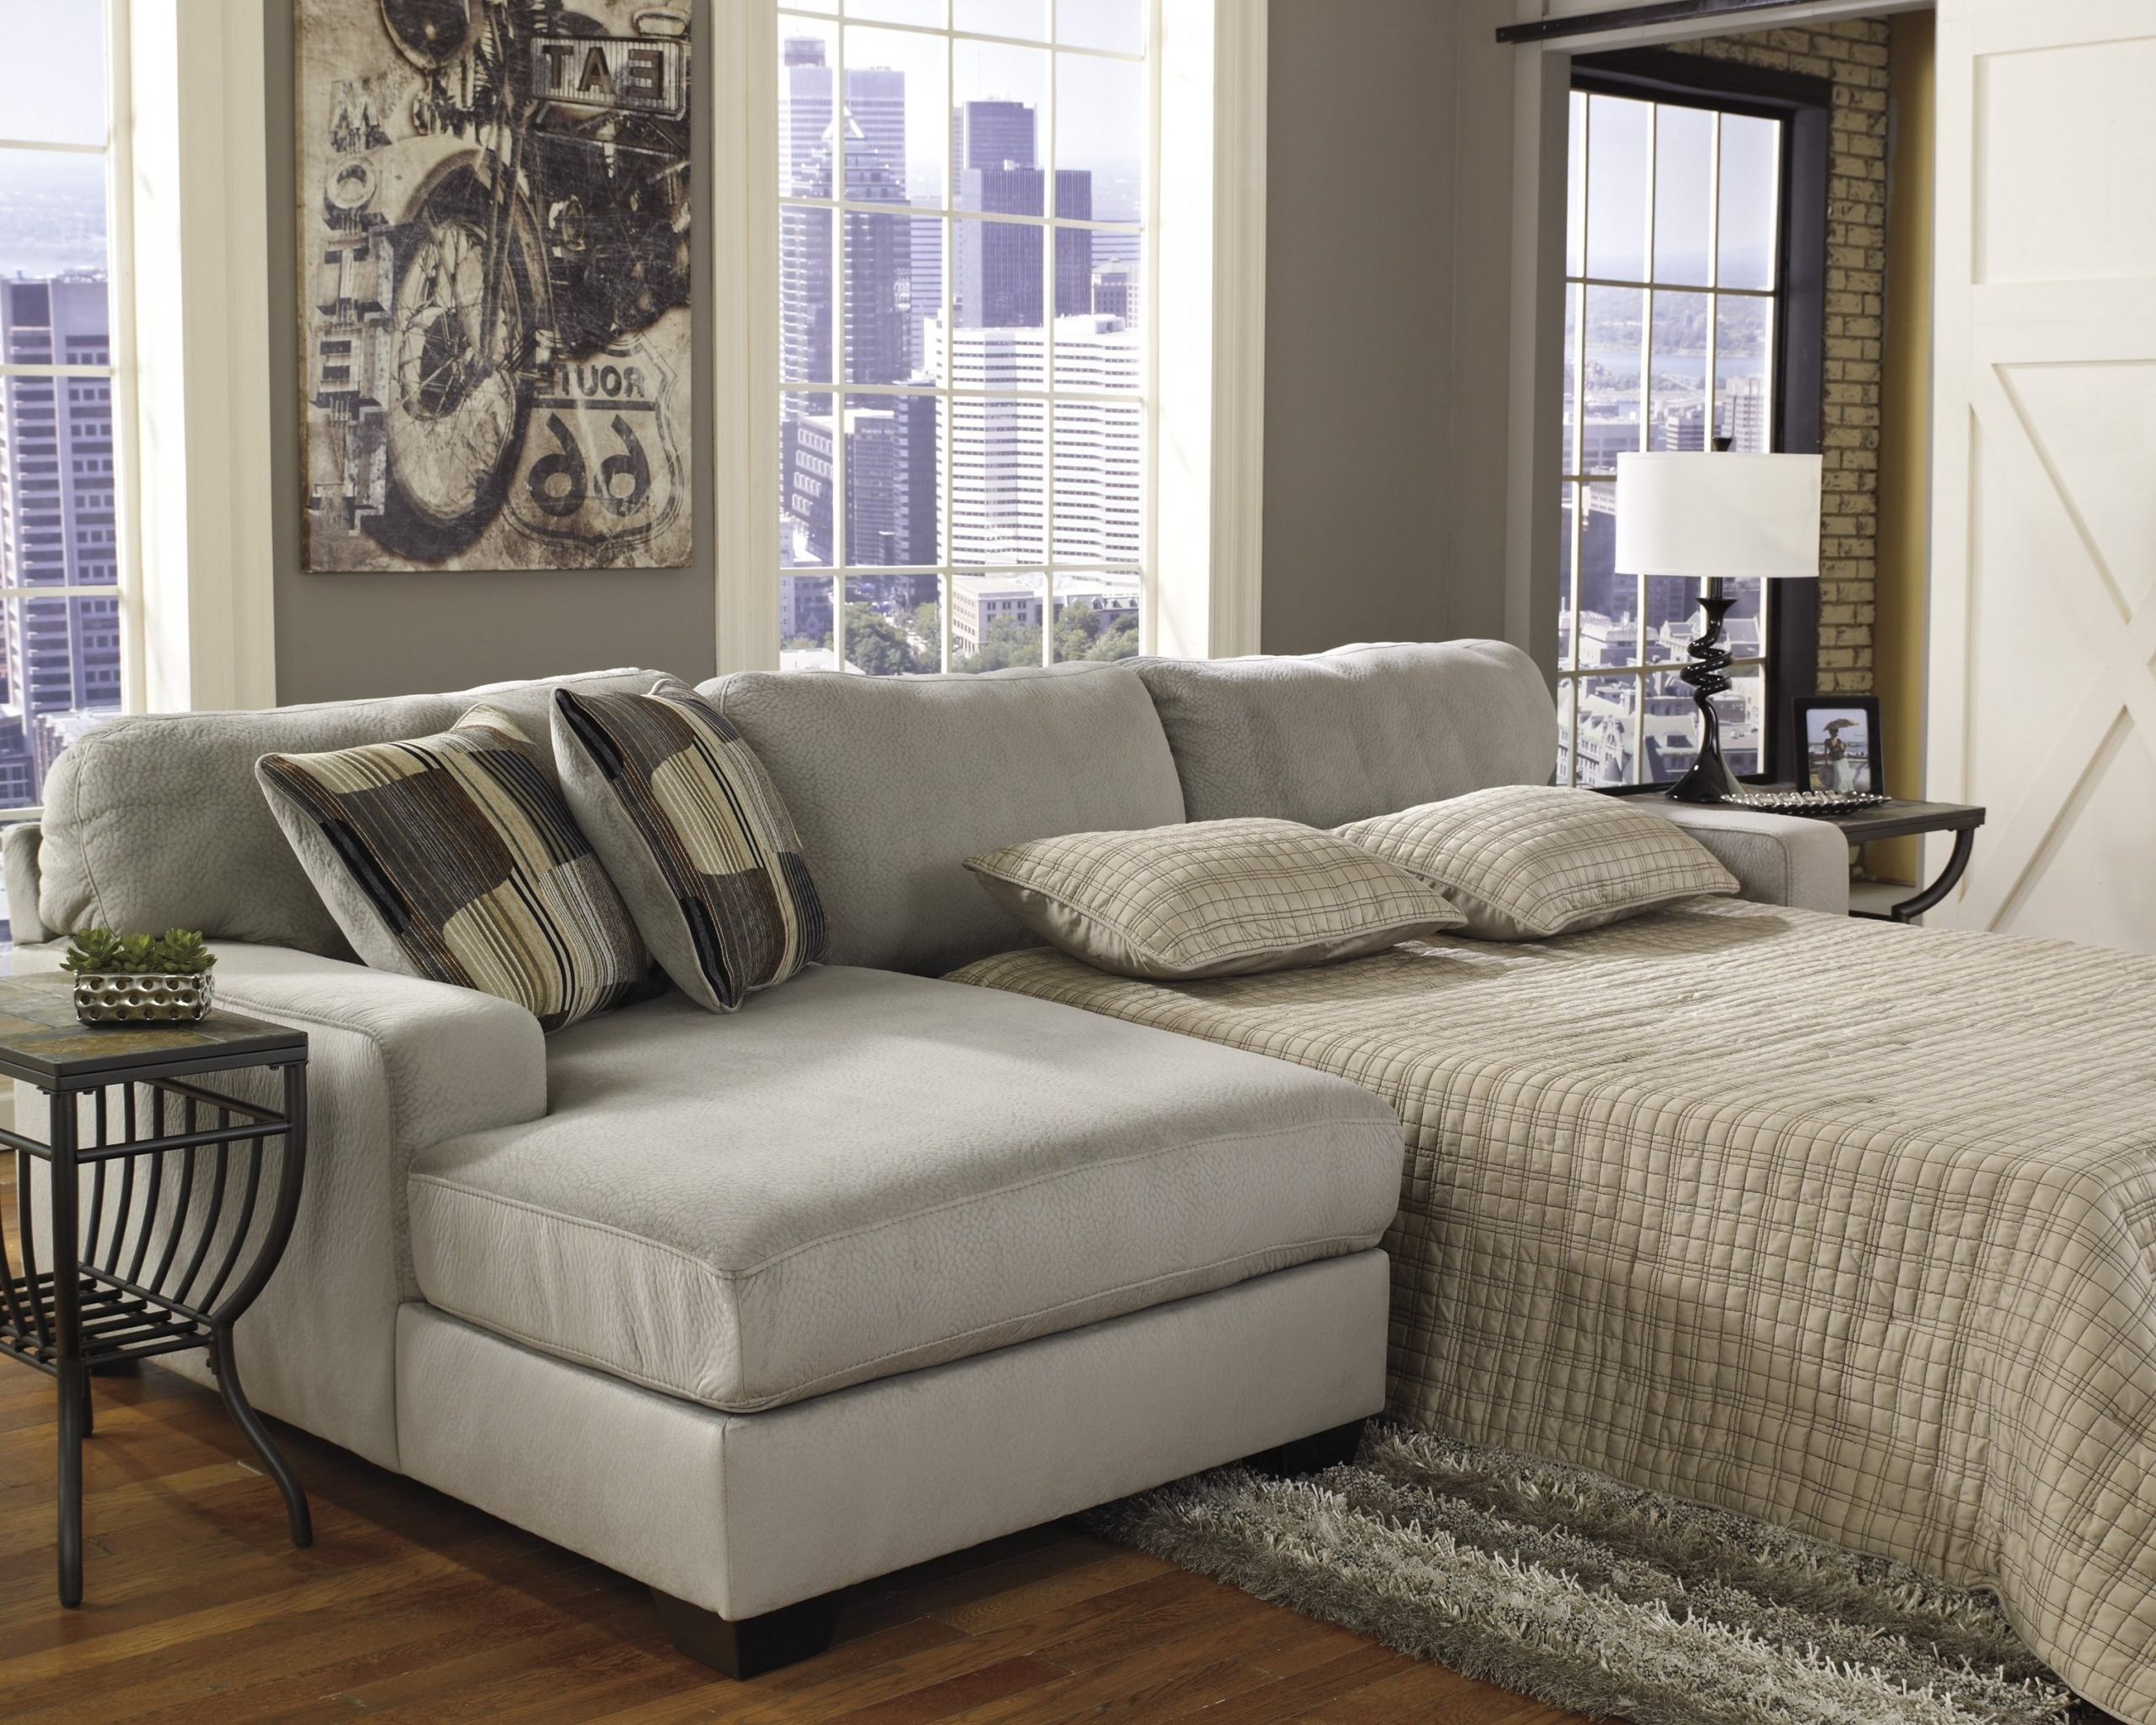 Sectional Sleeper Sofa With Chaise In Well Liked Chaise Sectional Sleepers (View 13 of 15)